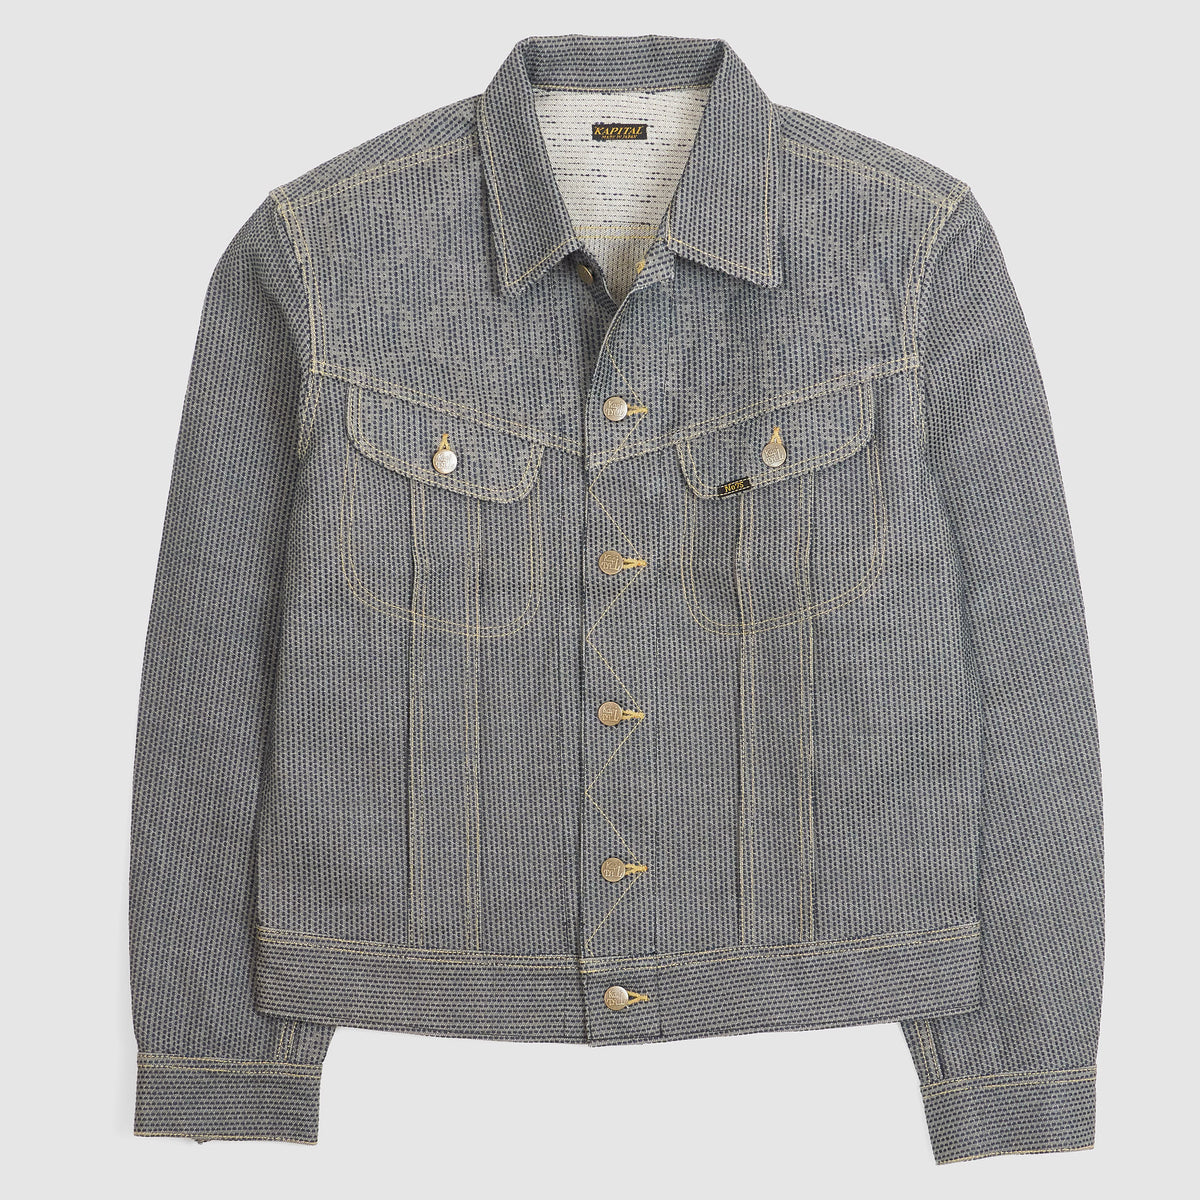 Kapital Century Denim Jacket